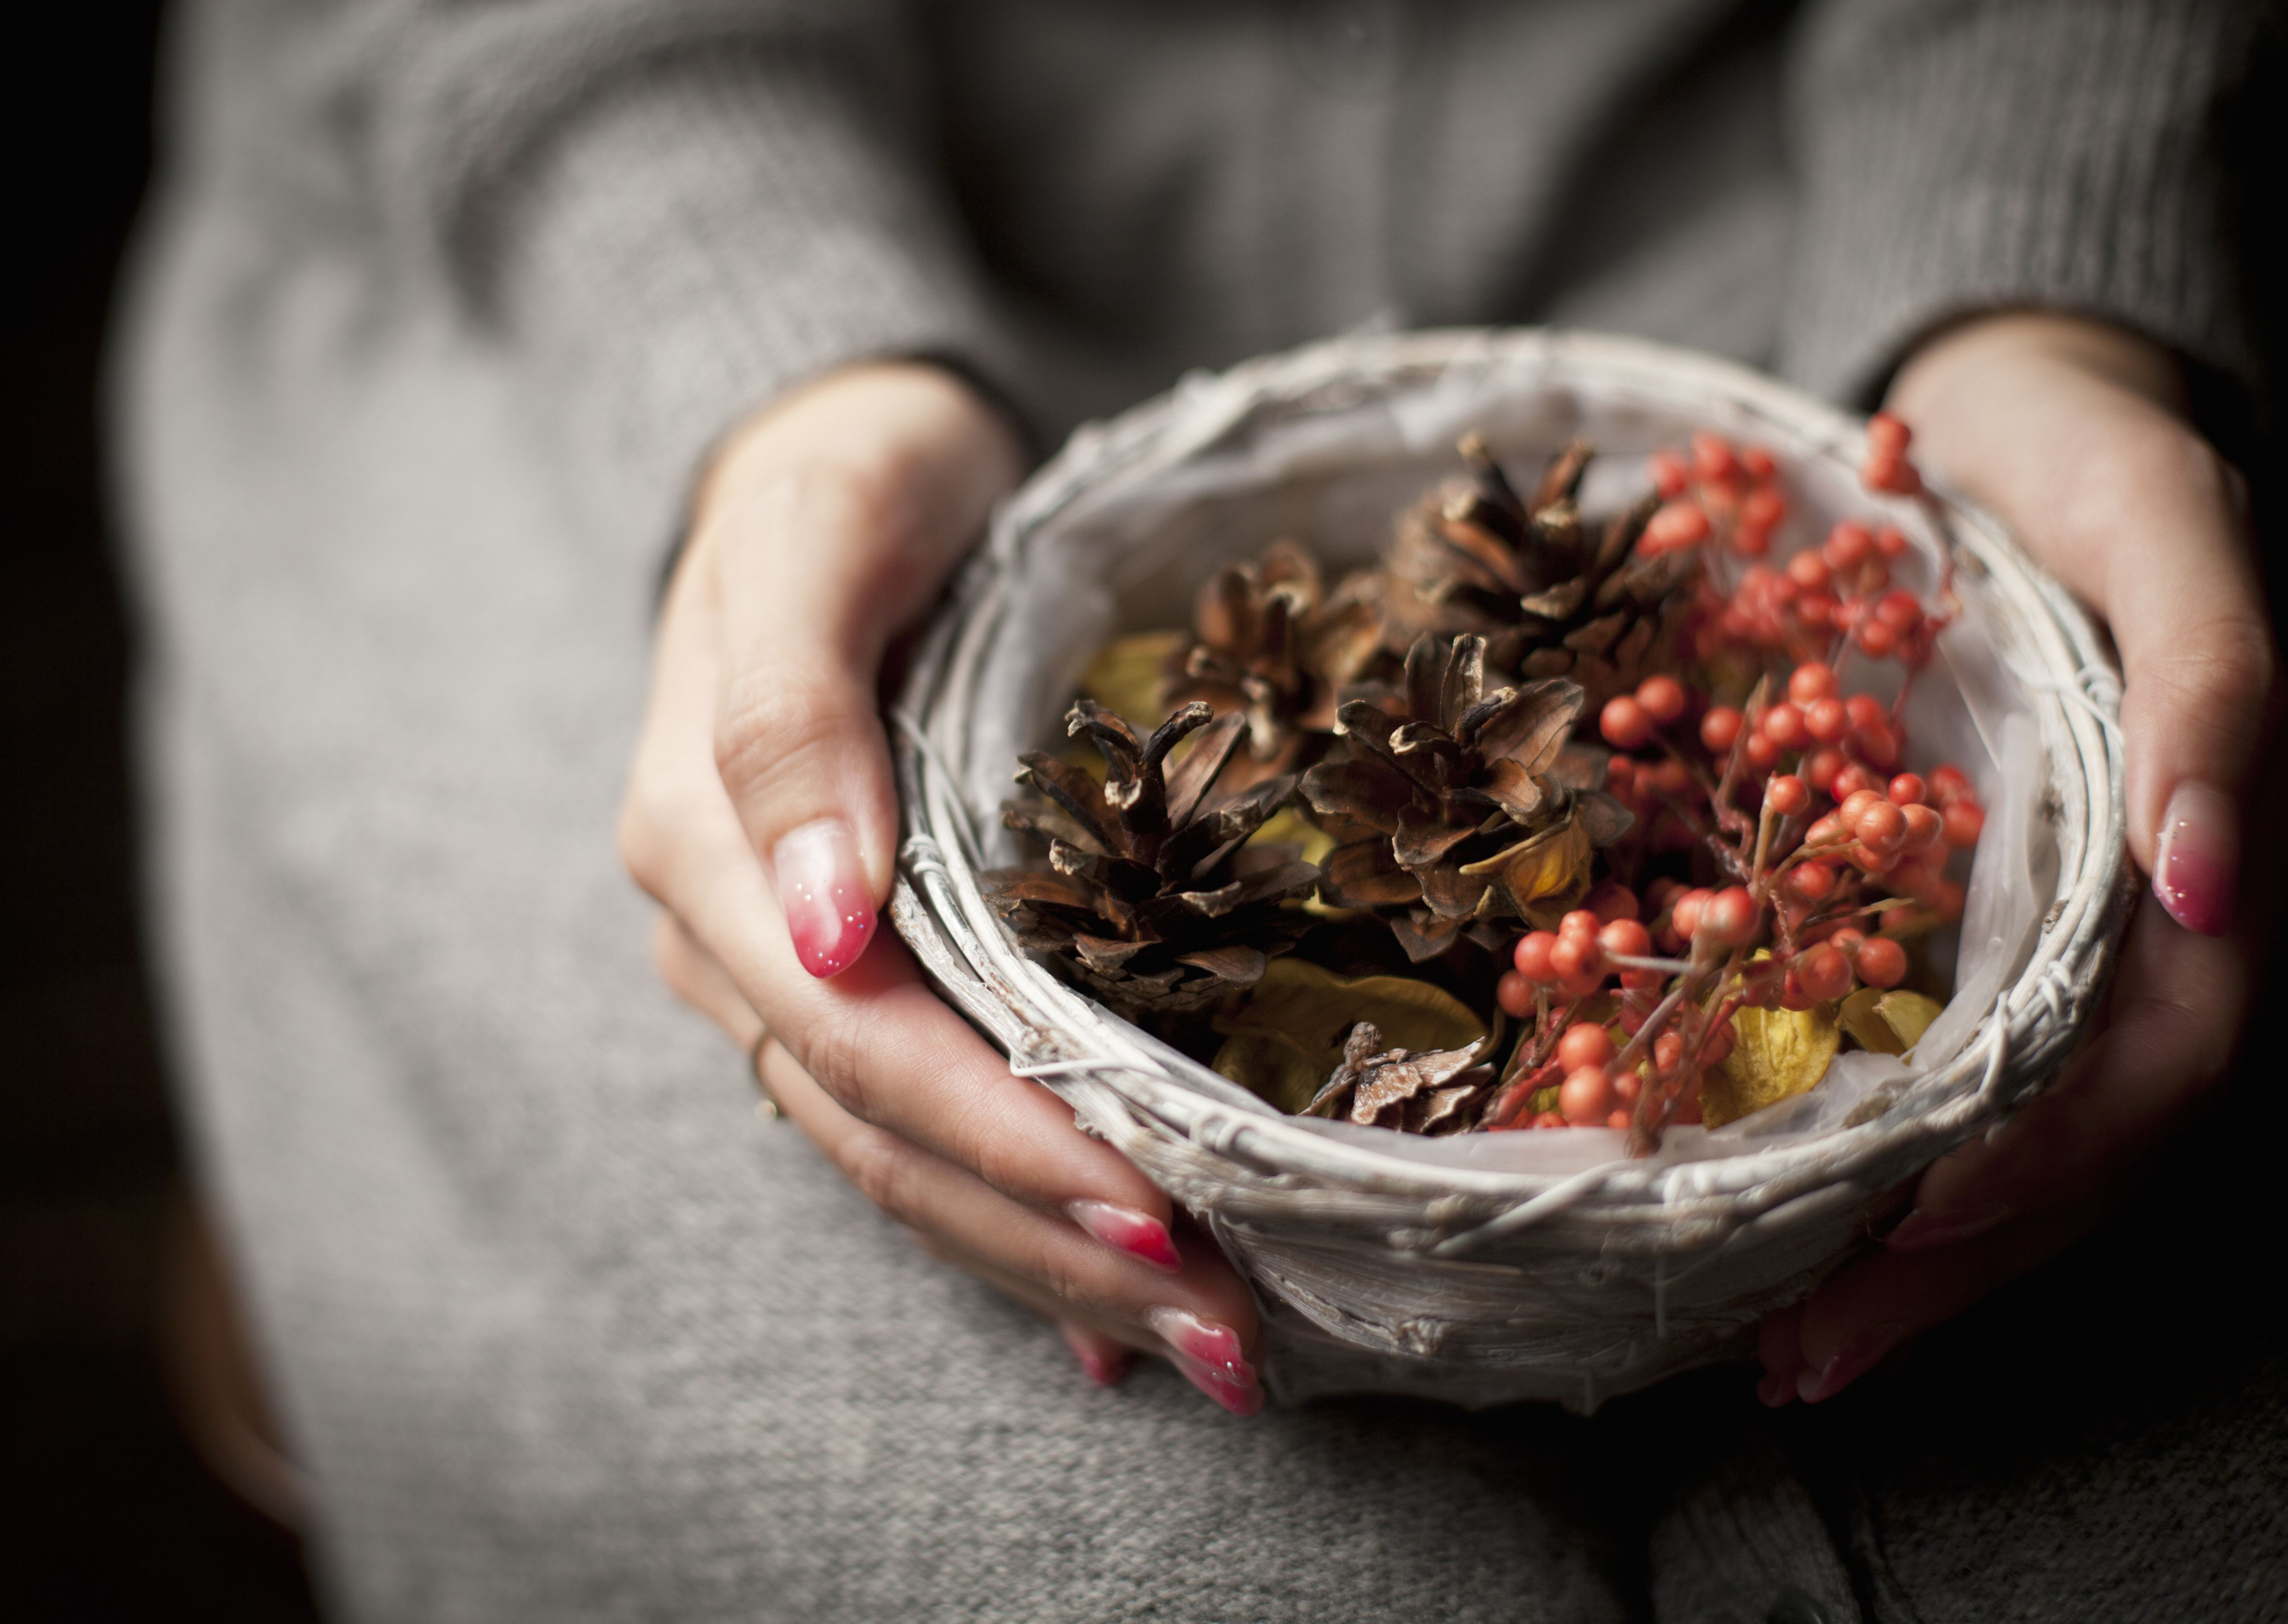 Woman holding a basket with pinecones and red berries